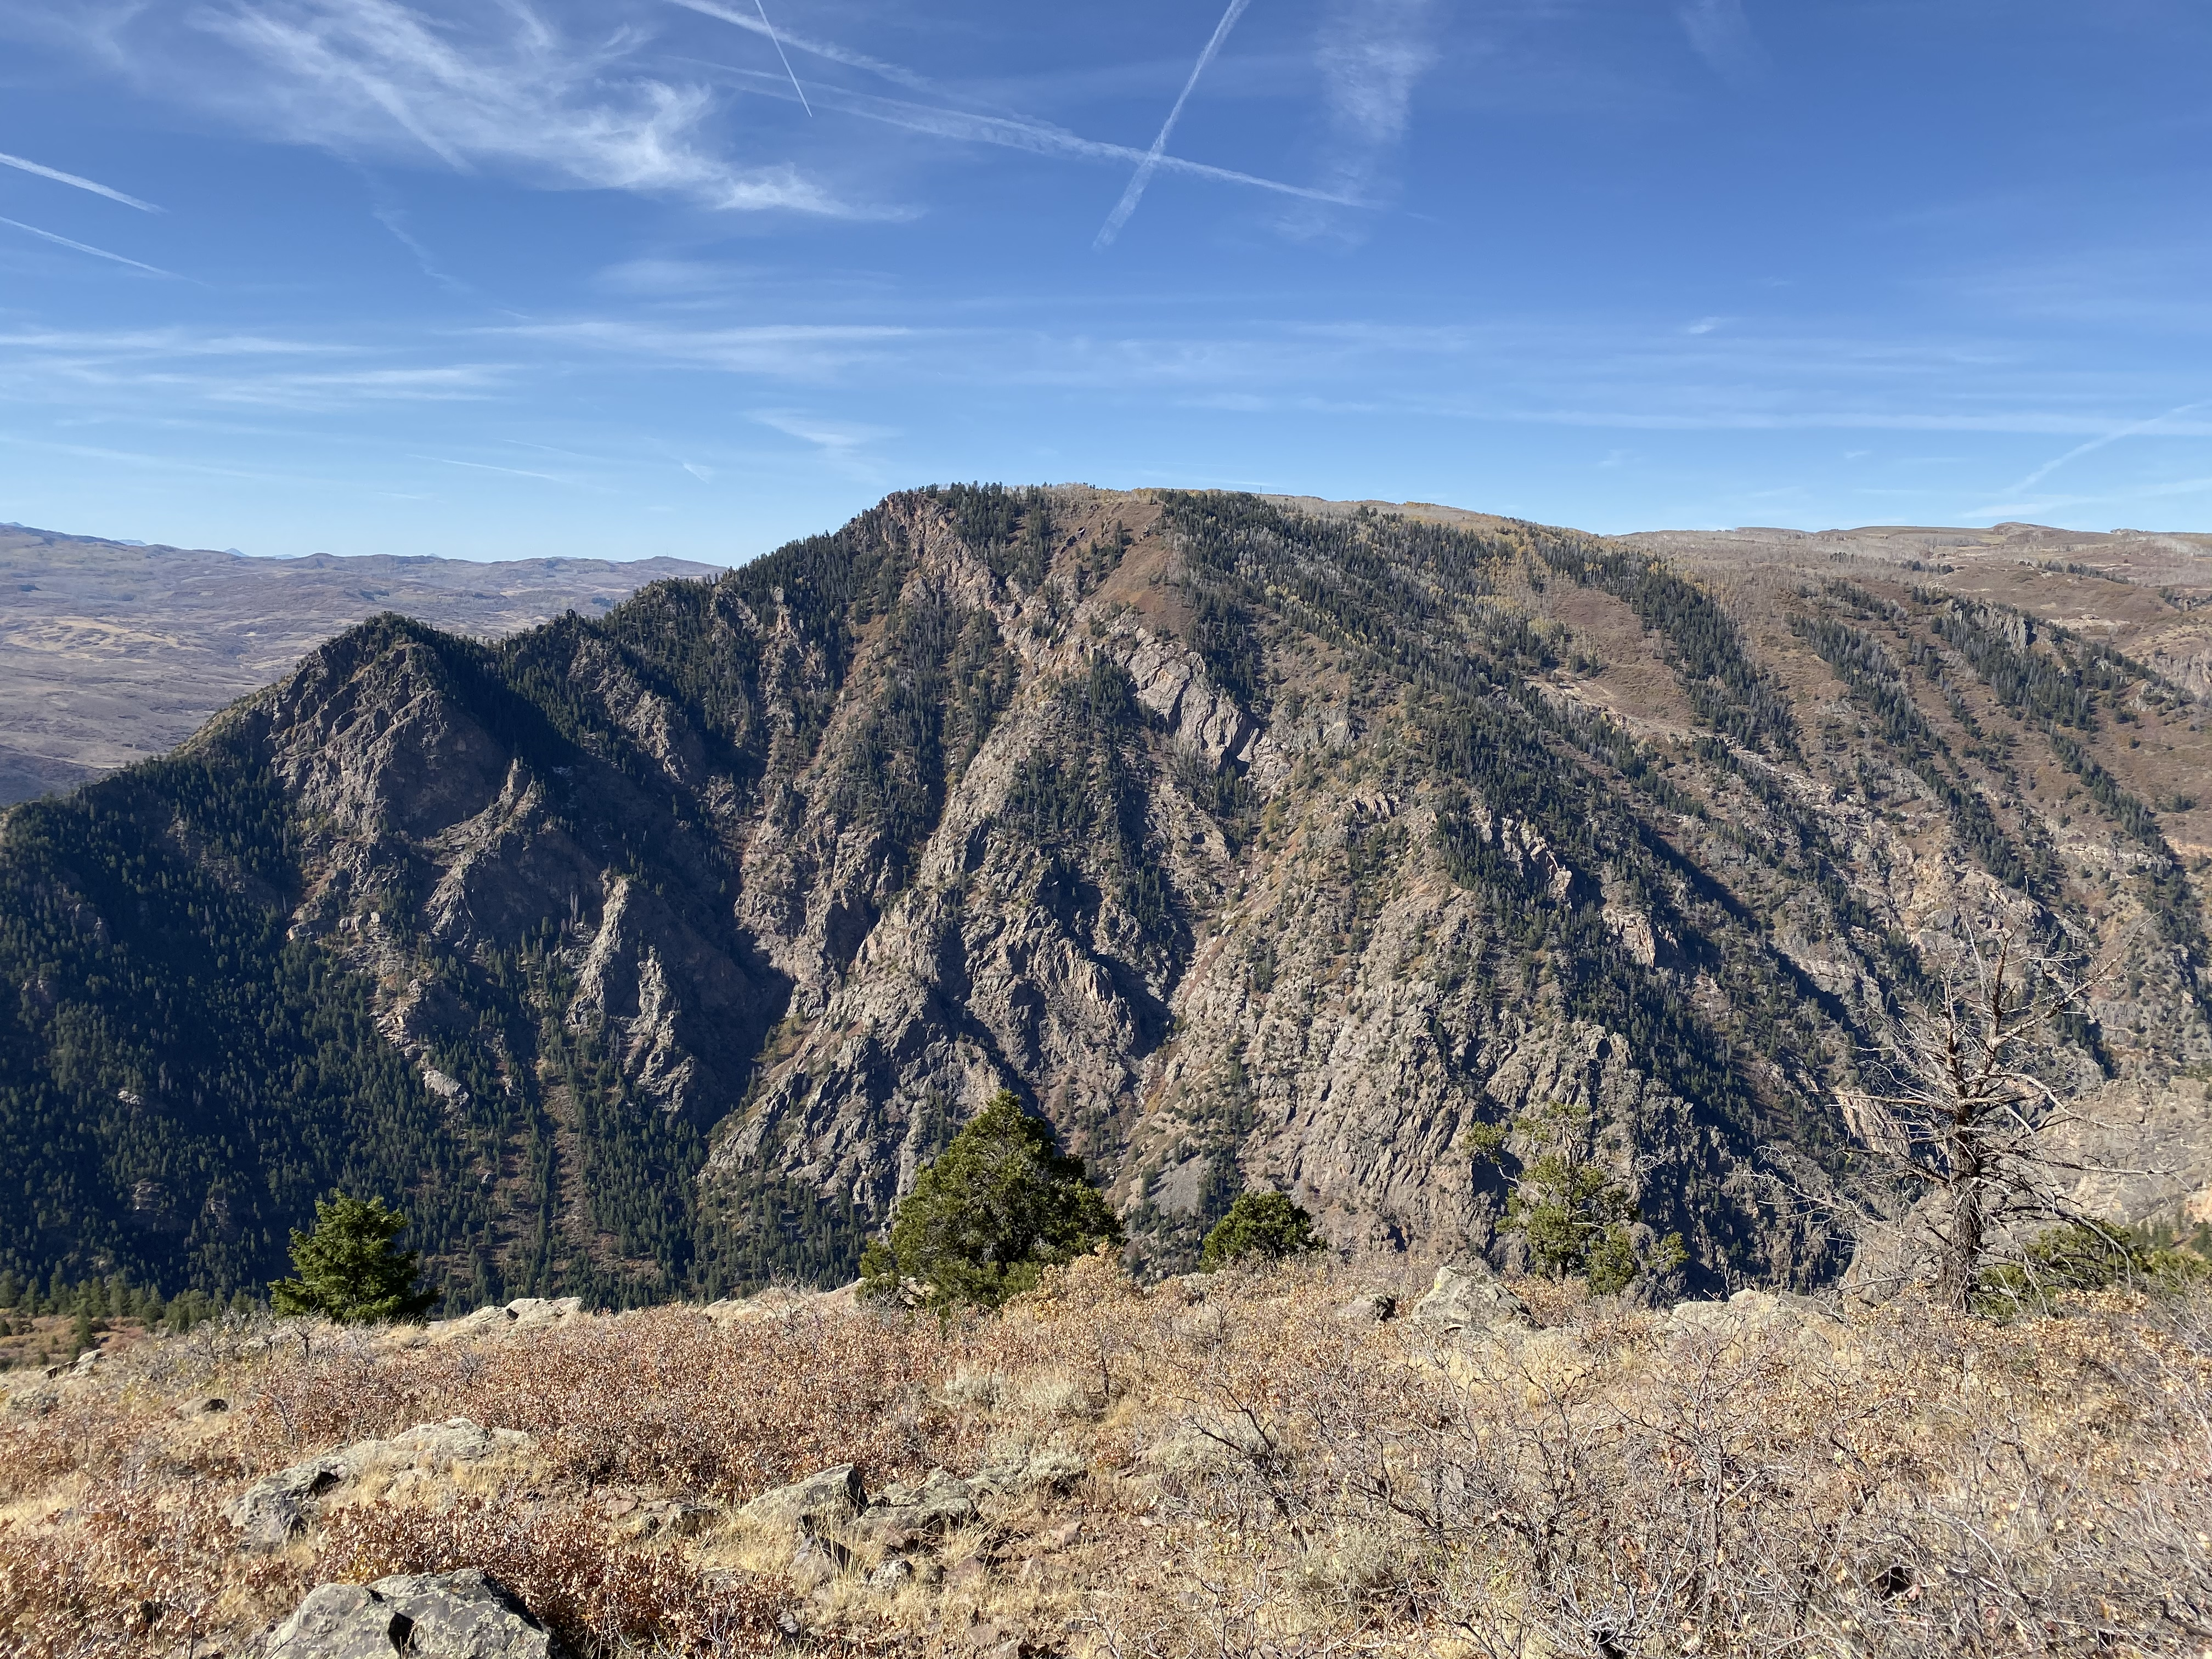 Black Canyon from the Hermit's Rest overlook.